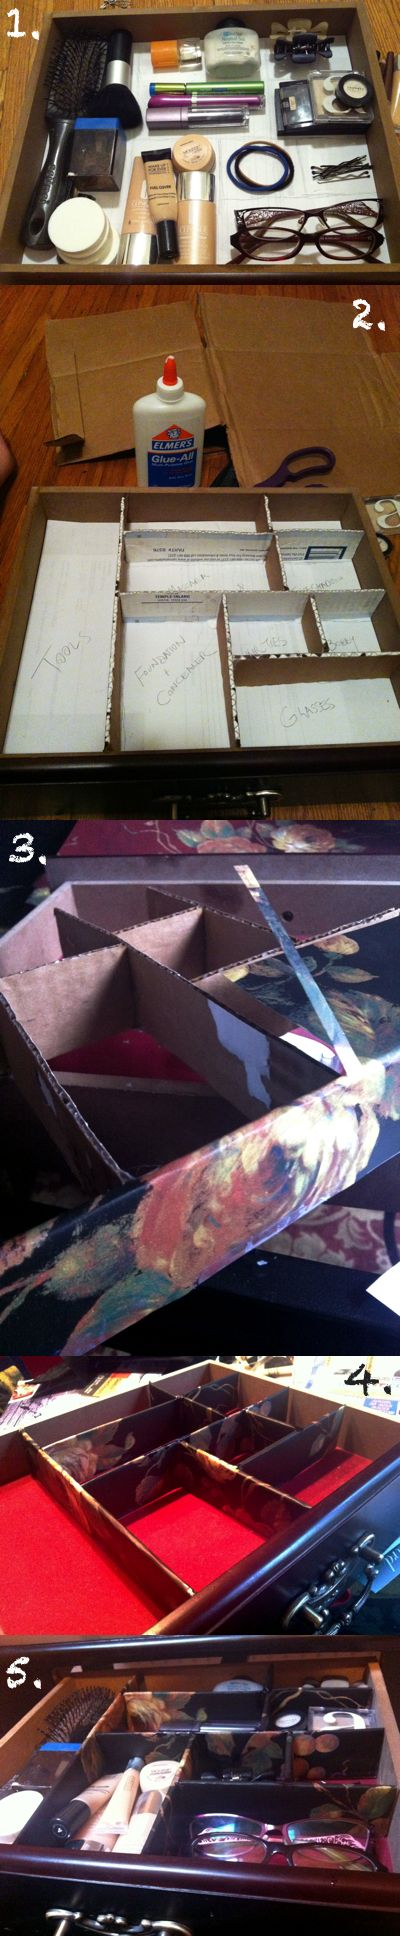 Tutorial: Make a drawer organizer made out of cardboard and wallpaper... I need to do this...